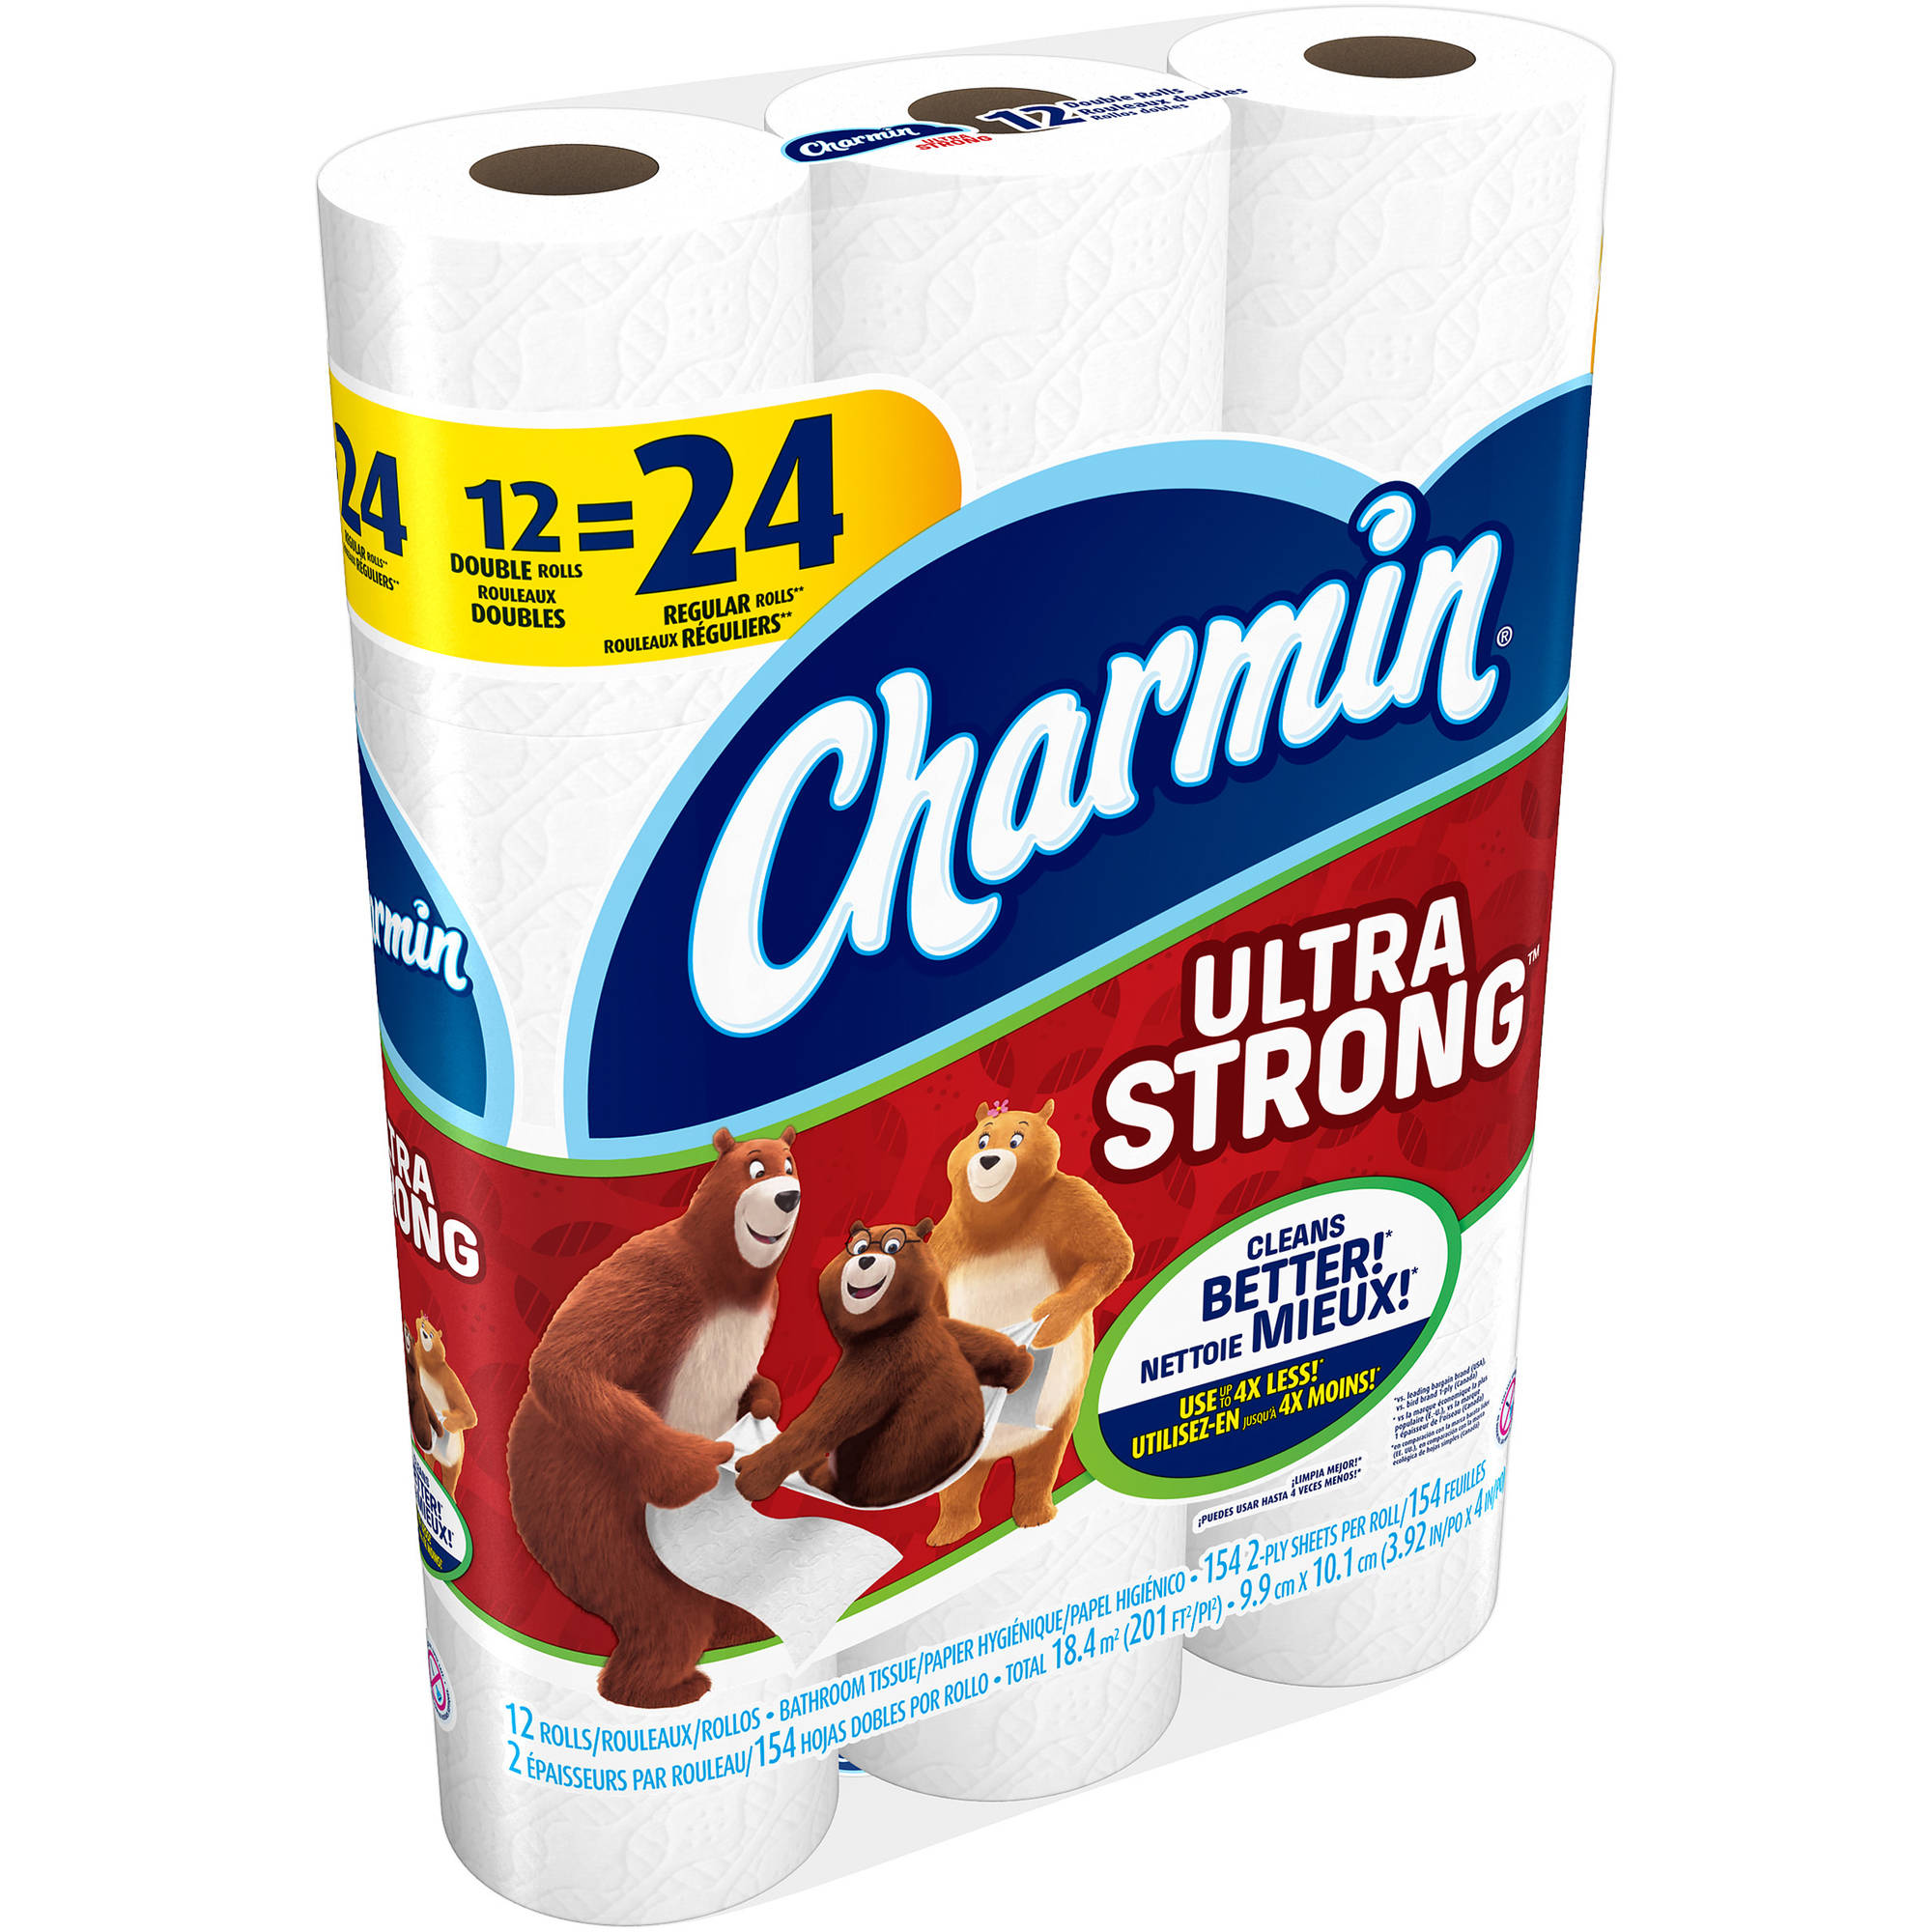 Charmin Ultra Strong Toilet Paper Double Rolls, 308 sheets, 12 rolls